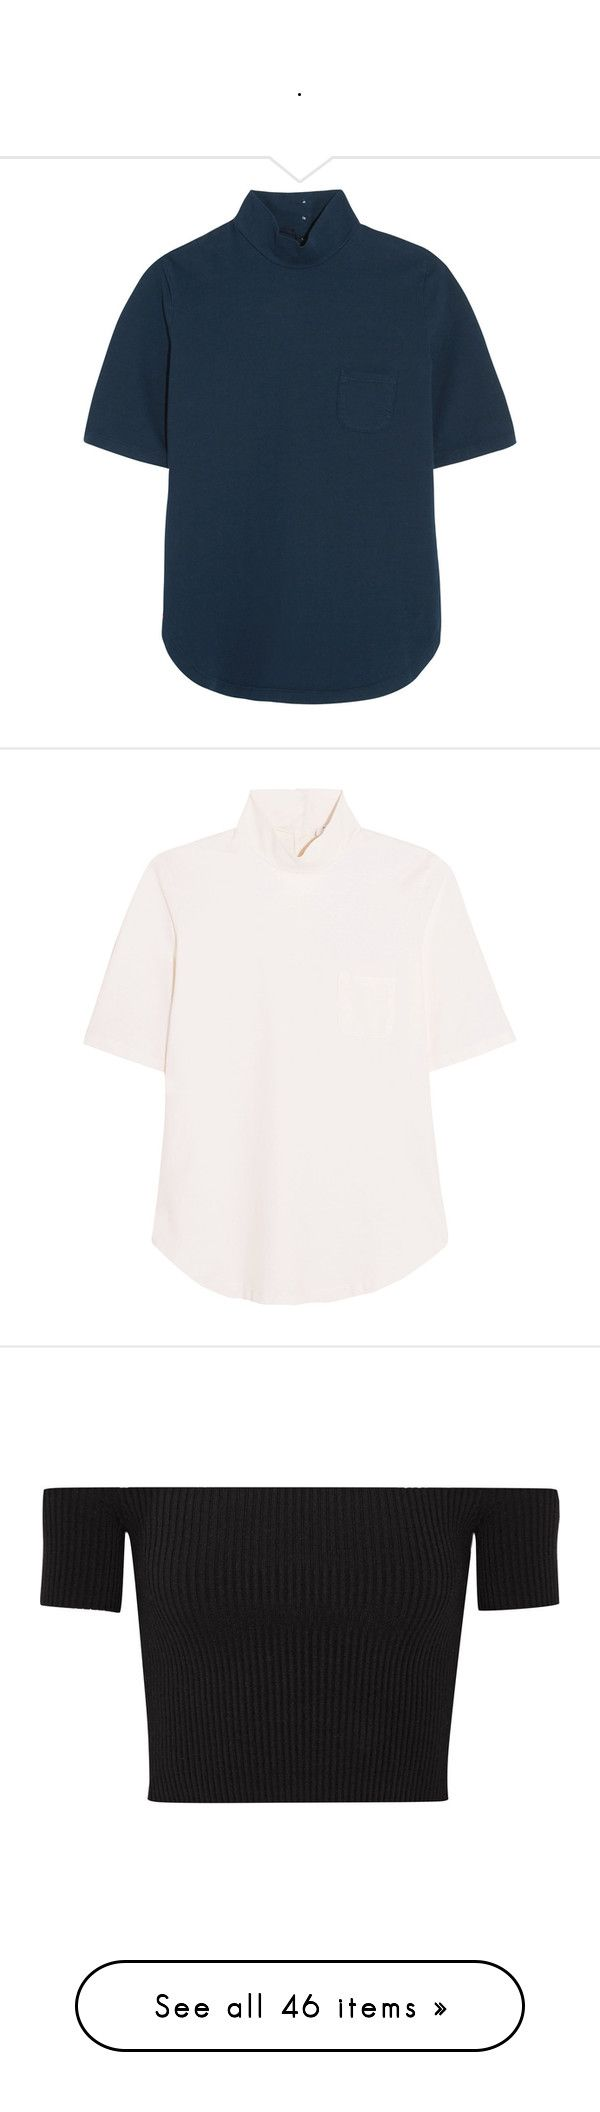 """""""."""" by erikaje ❤ liked on Polyvore featuring tops, t-shirts, storm blue, jersey t shirt, blue jersey, blue tee, frame jersey, blue top, white jersey and white turtleneck top"""